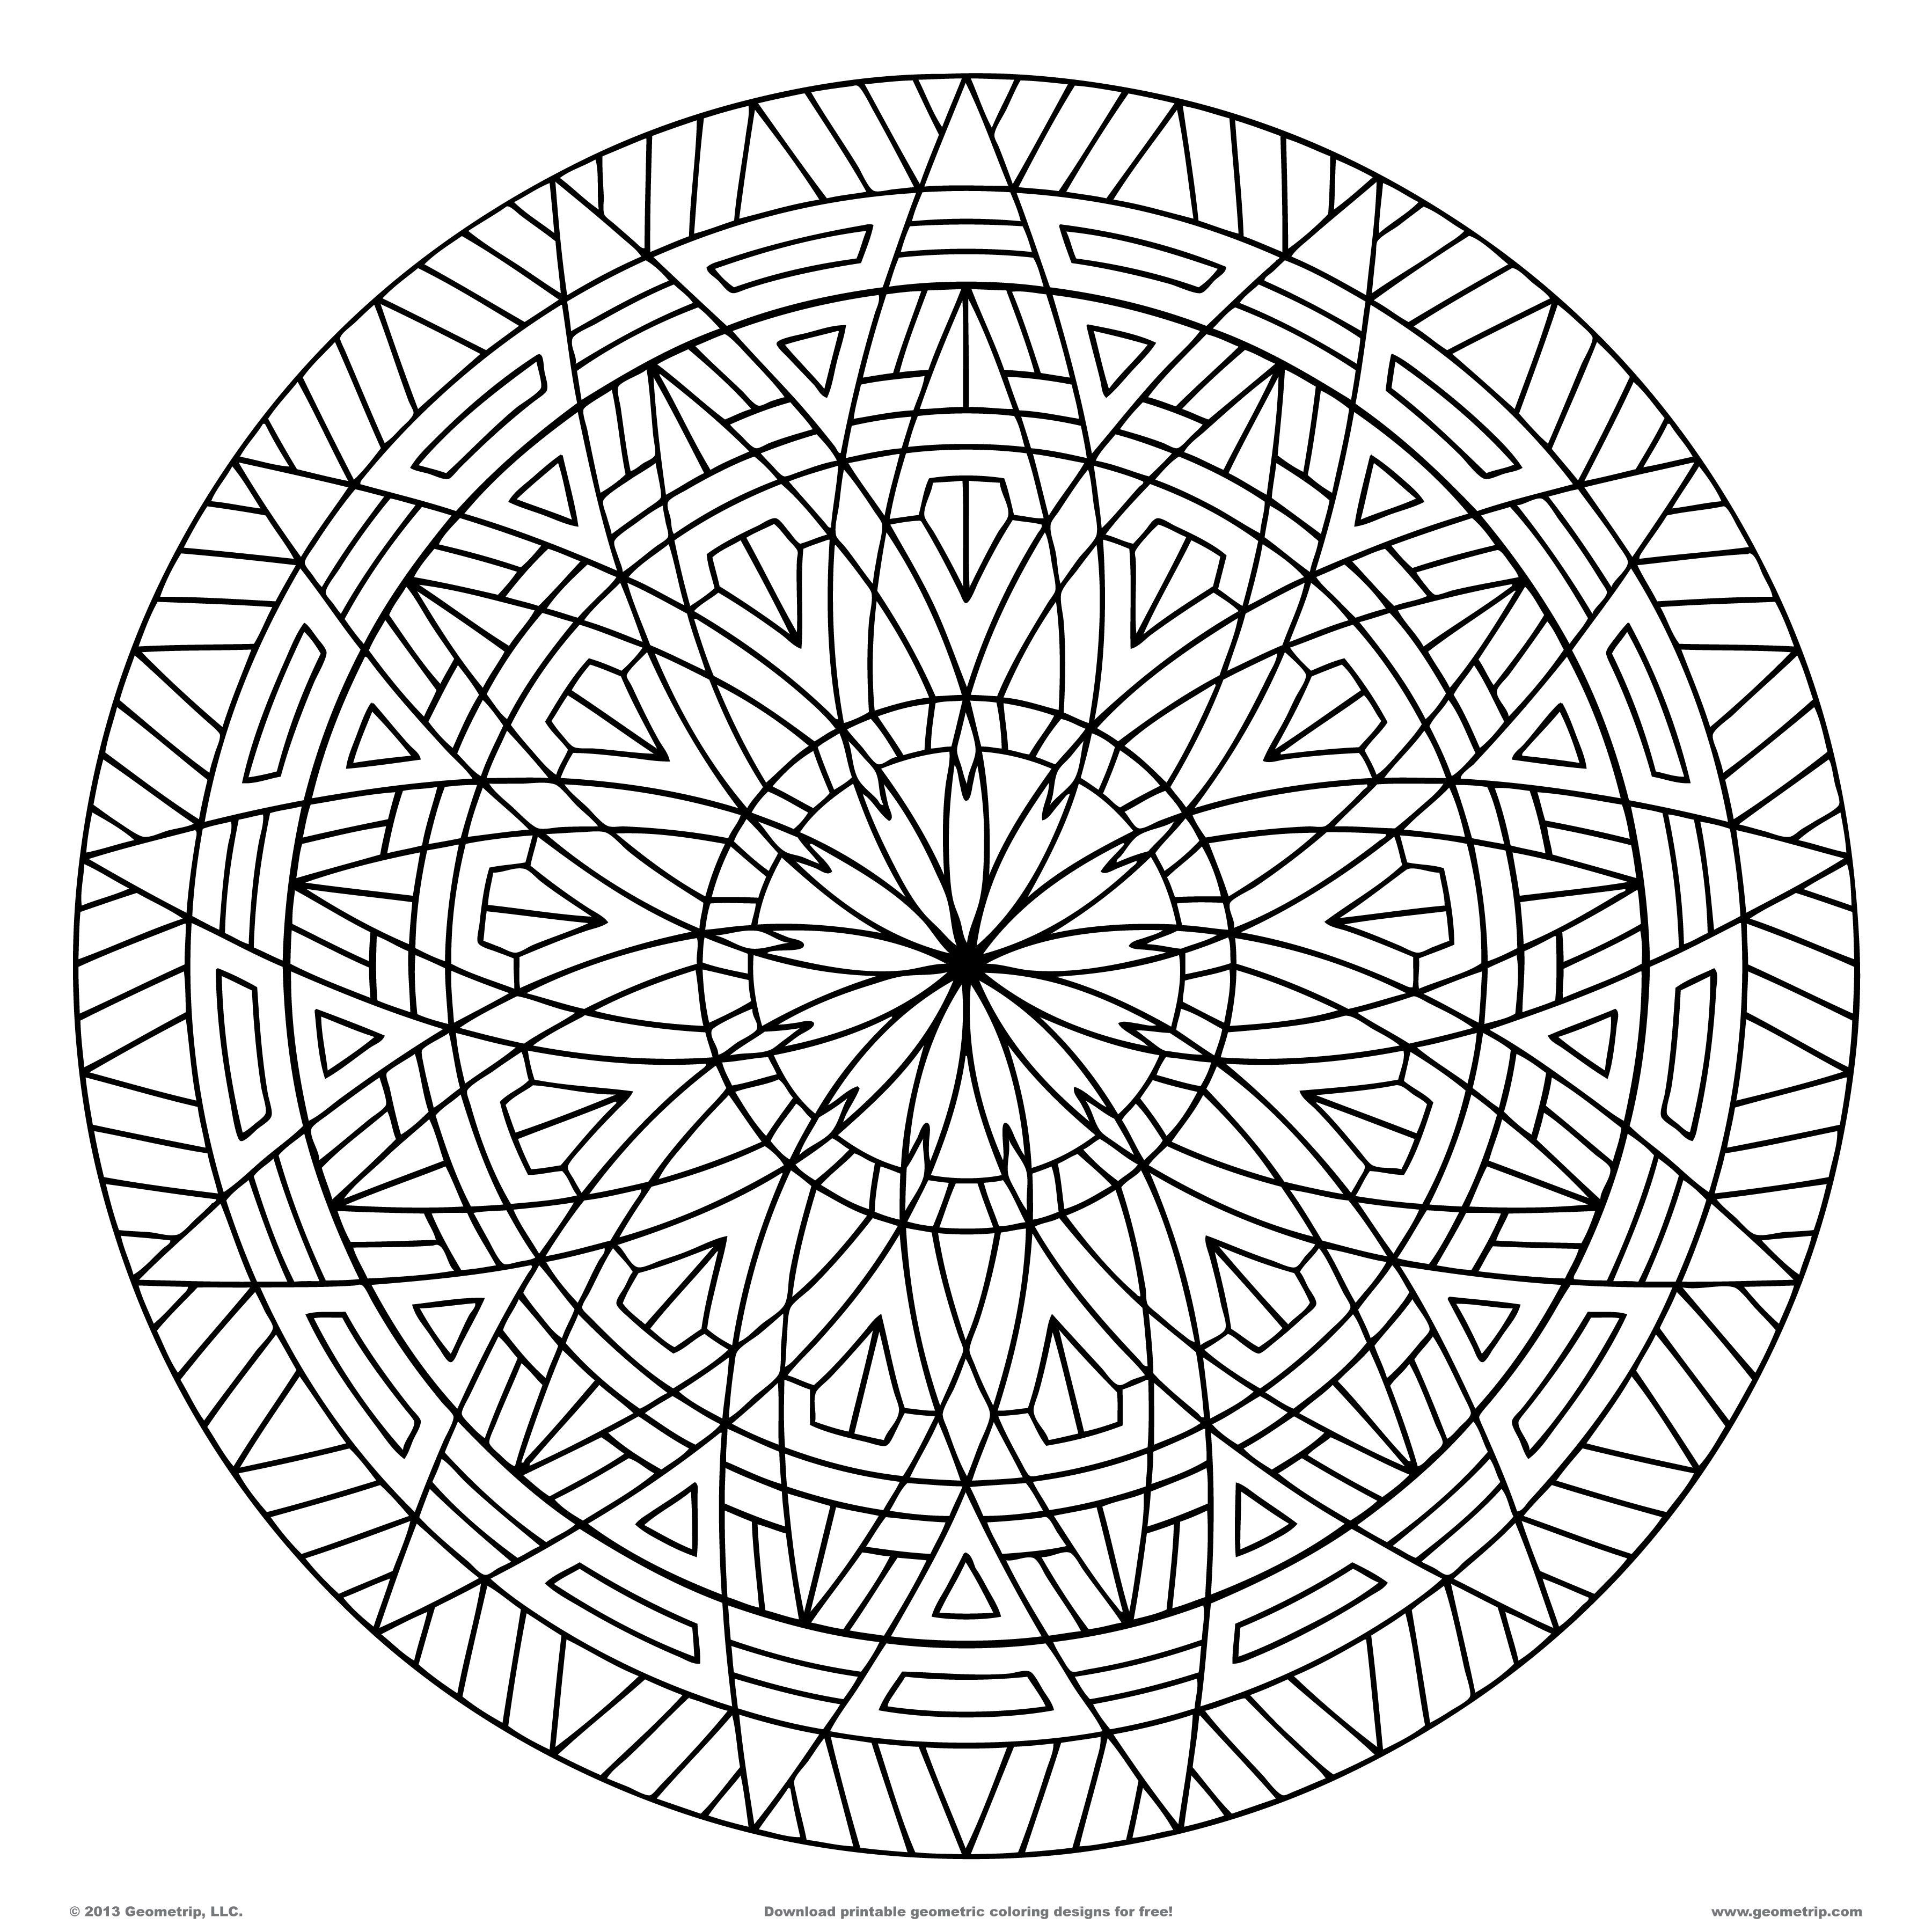 Best ideas about Coloring Pages For Adults Patterns . Save or Pin Pattern Coloring Pages For Adults Coloring Home Now.